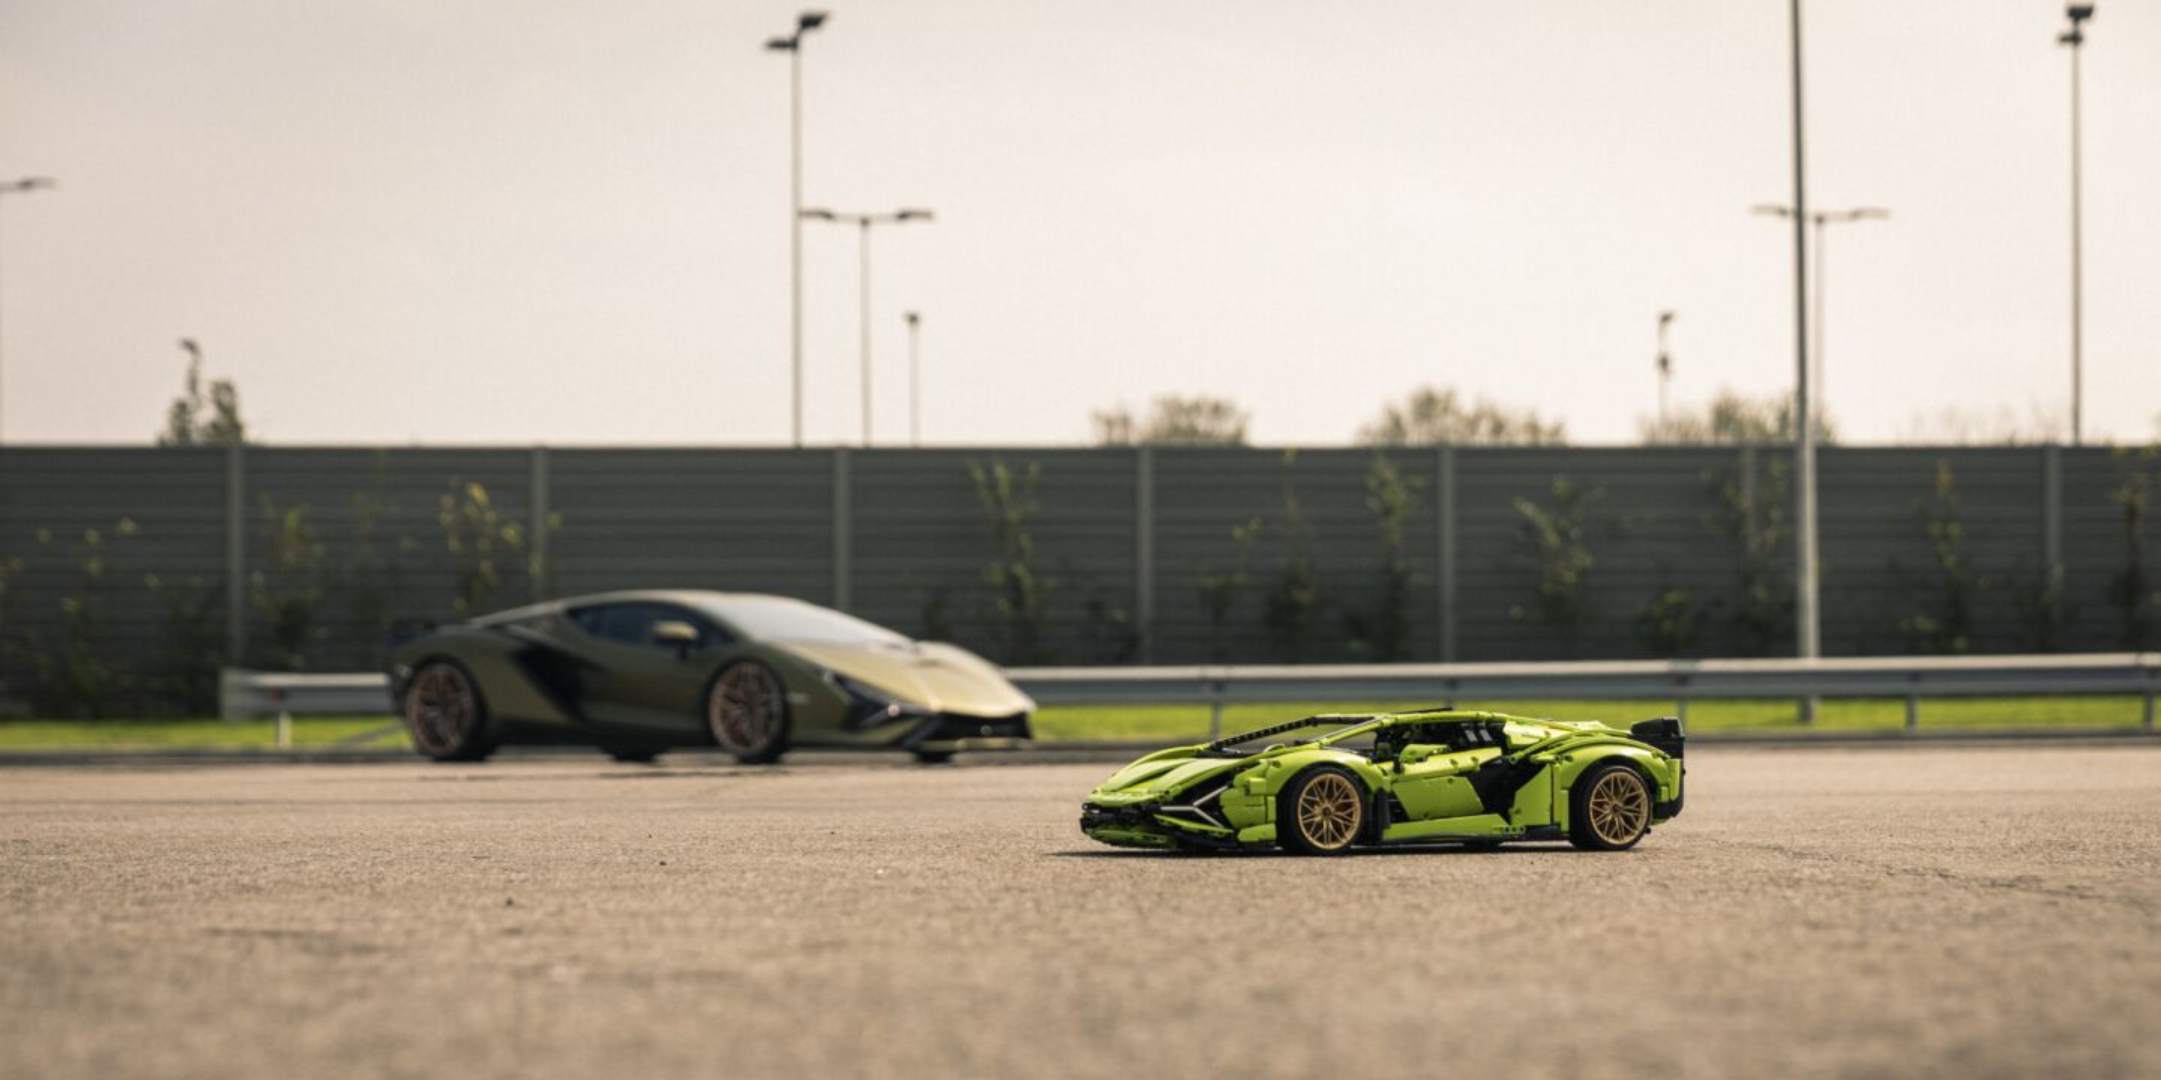 Lego's 1:8 scale model kit of the Lamborghini Sian might actually be more desirable than the real car